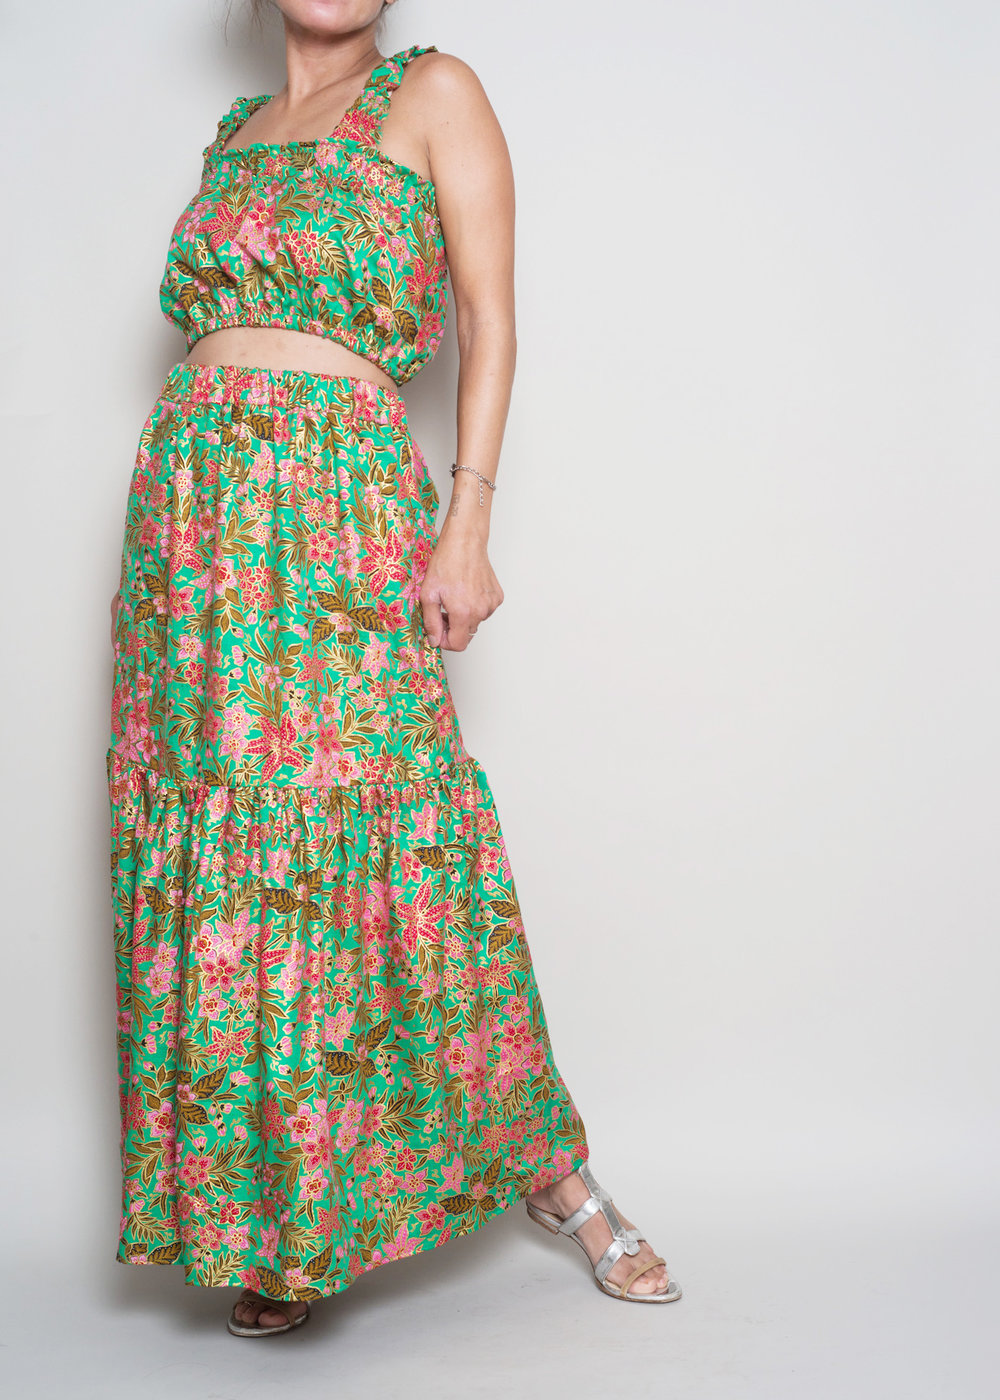 MELISSA Tiered Two Piece - SOLD OUT